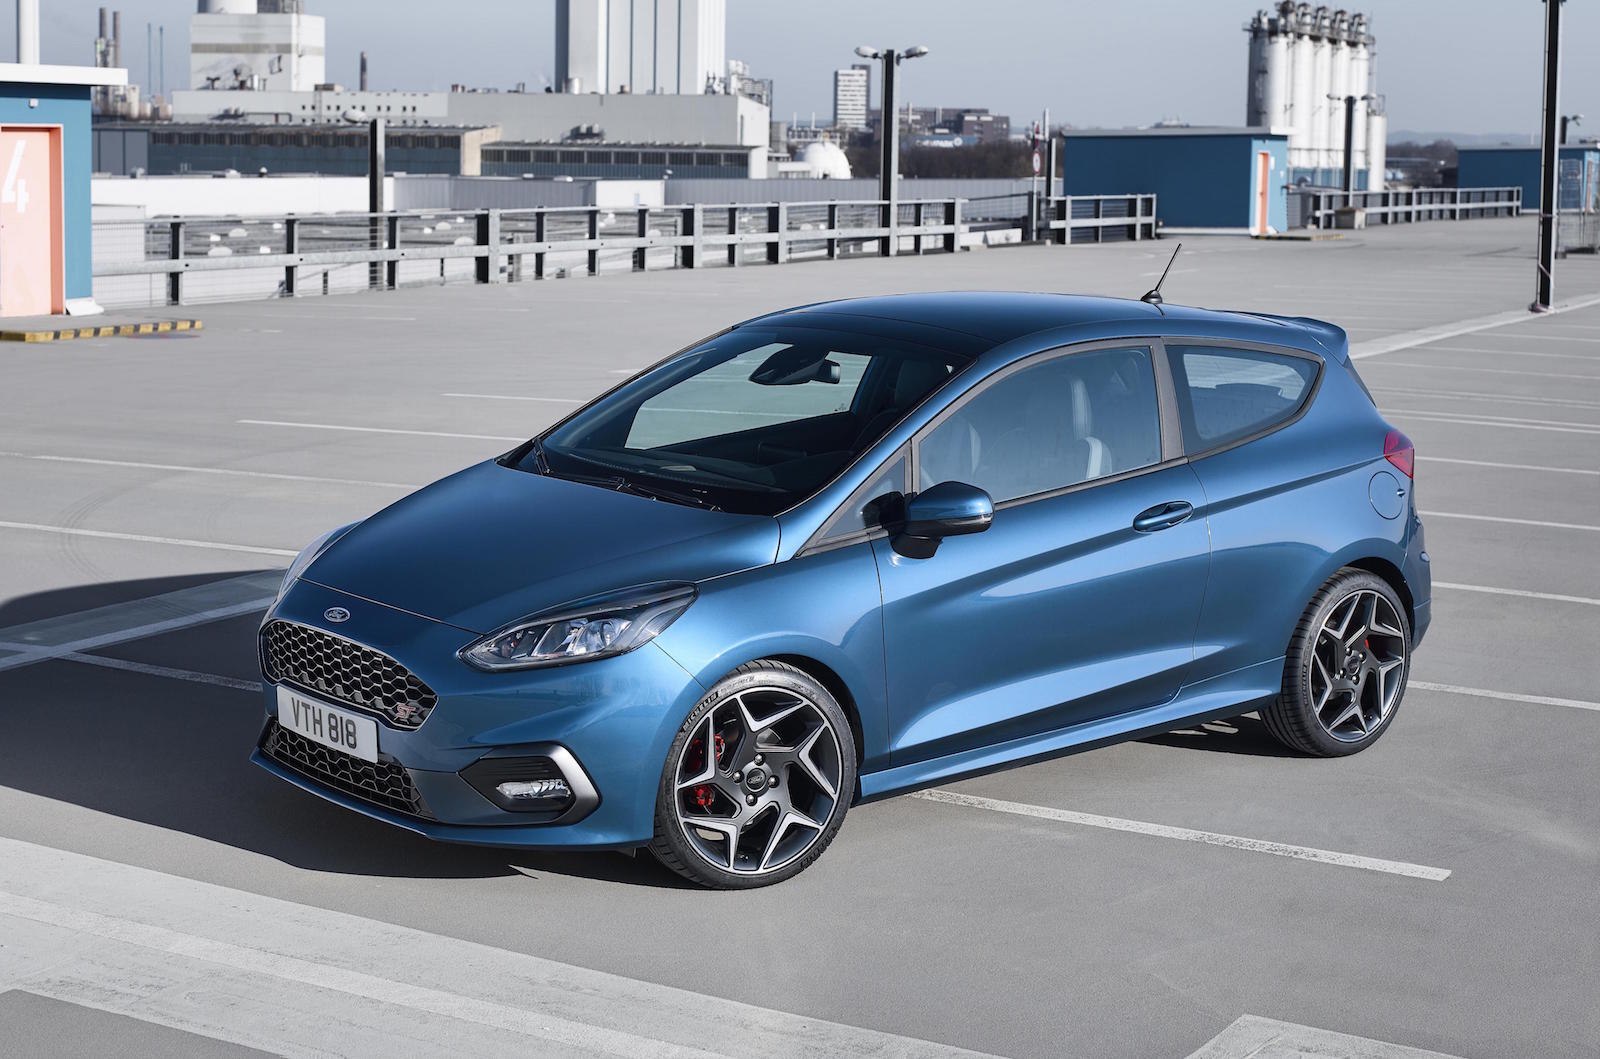 2017 ford fiesta st officially revealed gets 1 5t 3cyl performancedrive. Black Bedroom Furniture Sets. Home Design Ideas